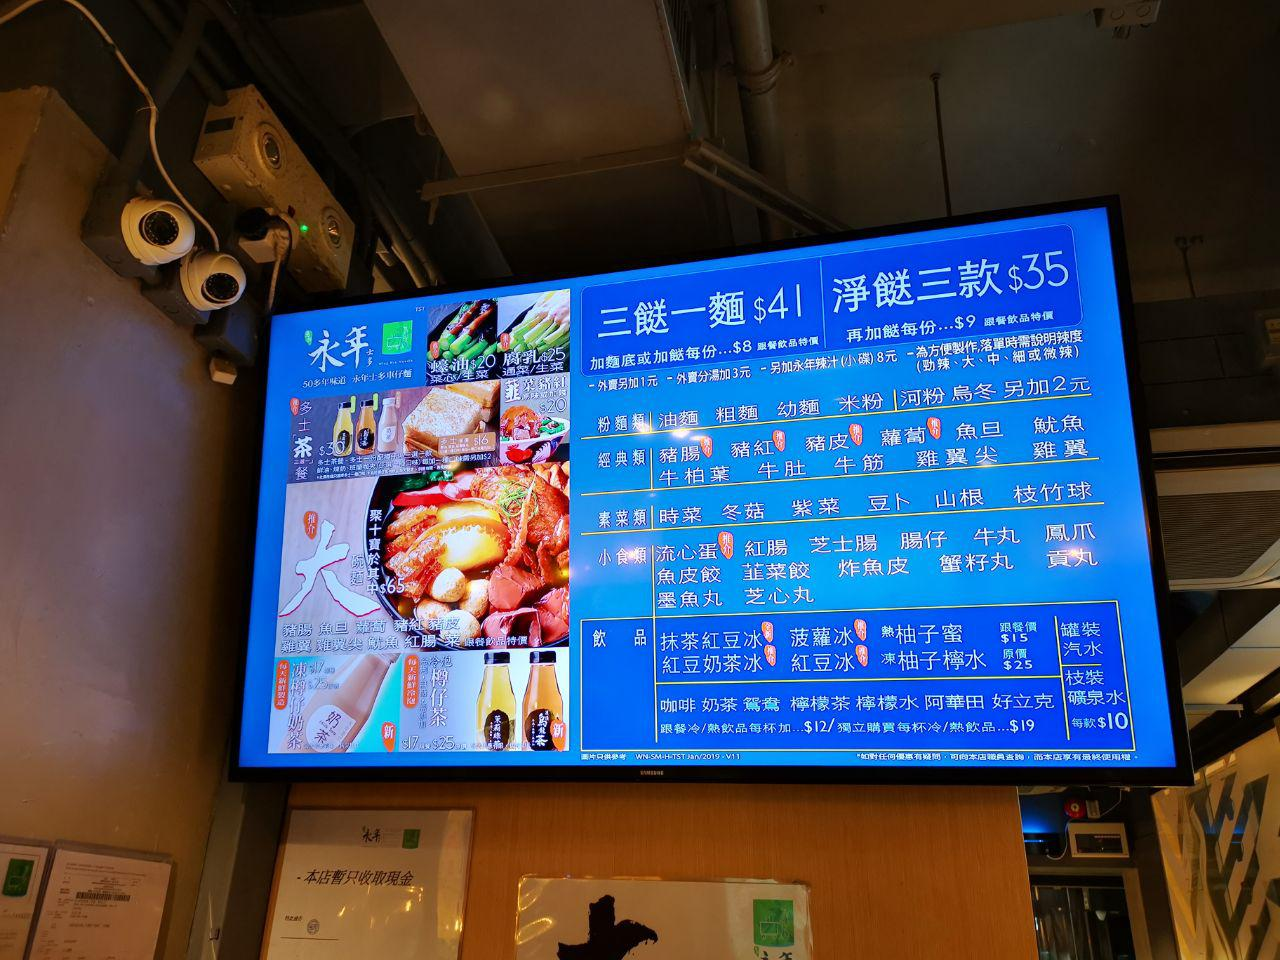 Menu at Wing Nin Noodle Shop in Cantonese only